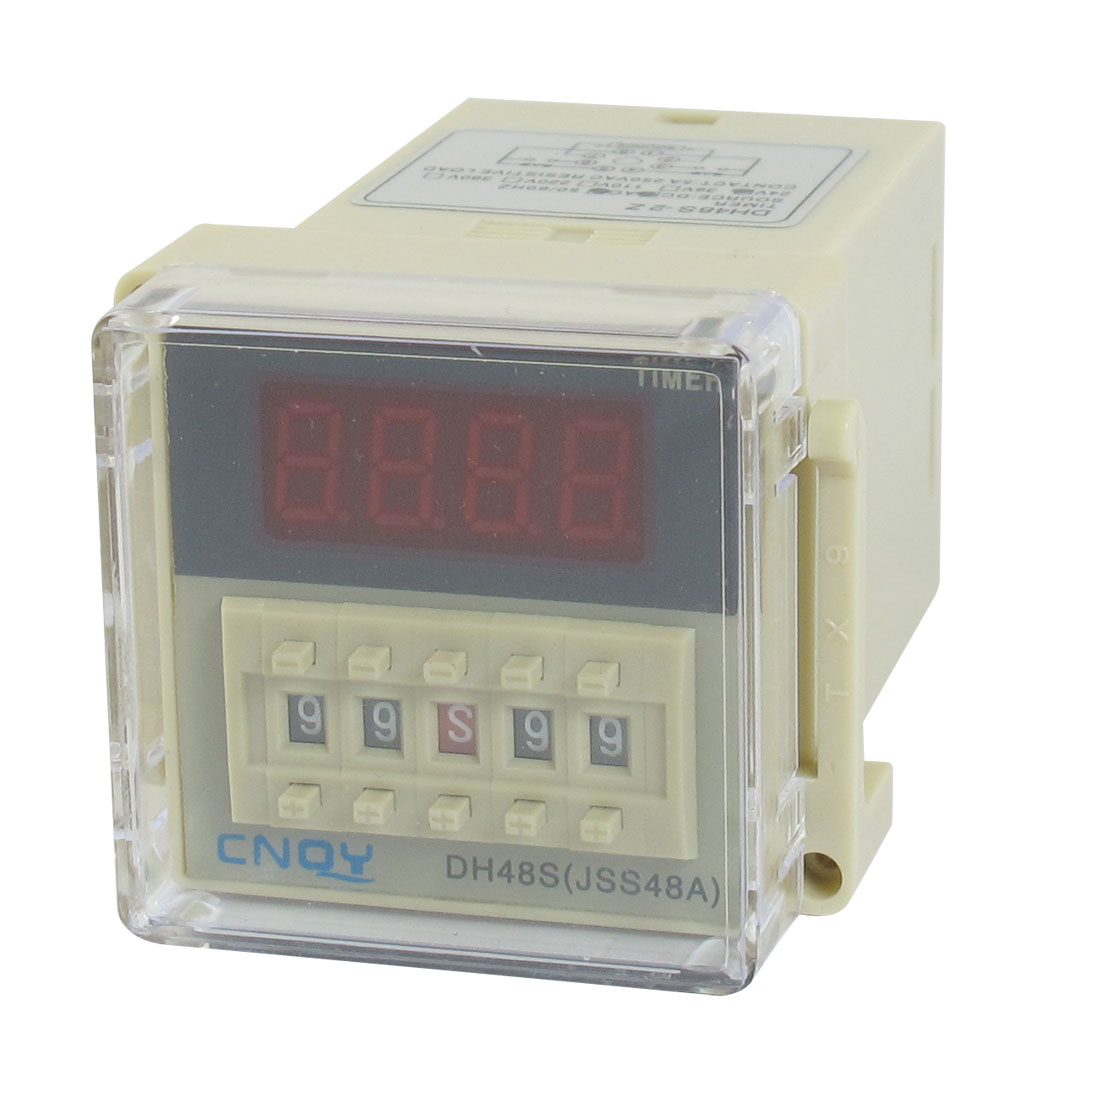 AC/DC24V DPDT 8P 0.01S-99H99M 4-Digit Programmable Timer Delay Relay DH48S-2Z